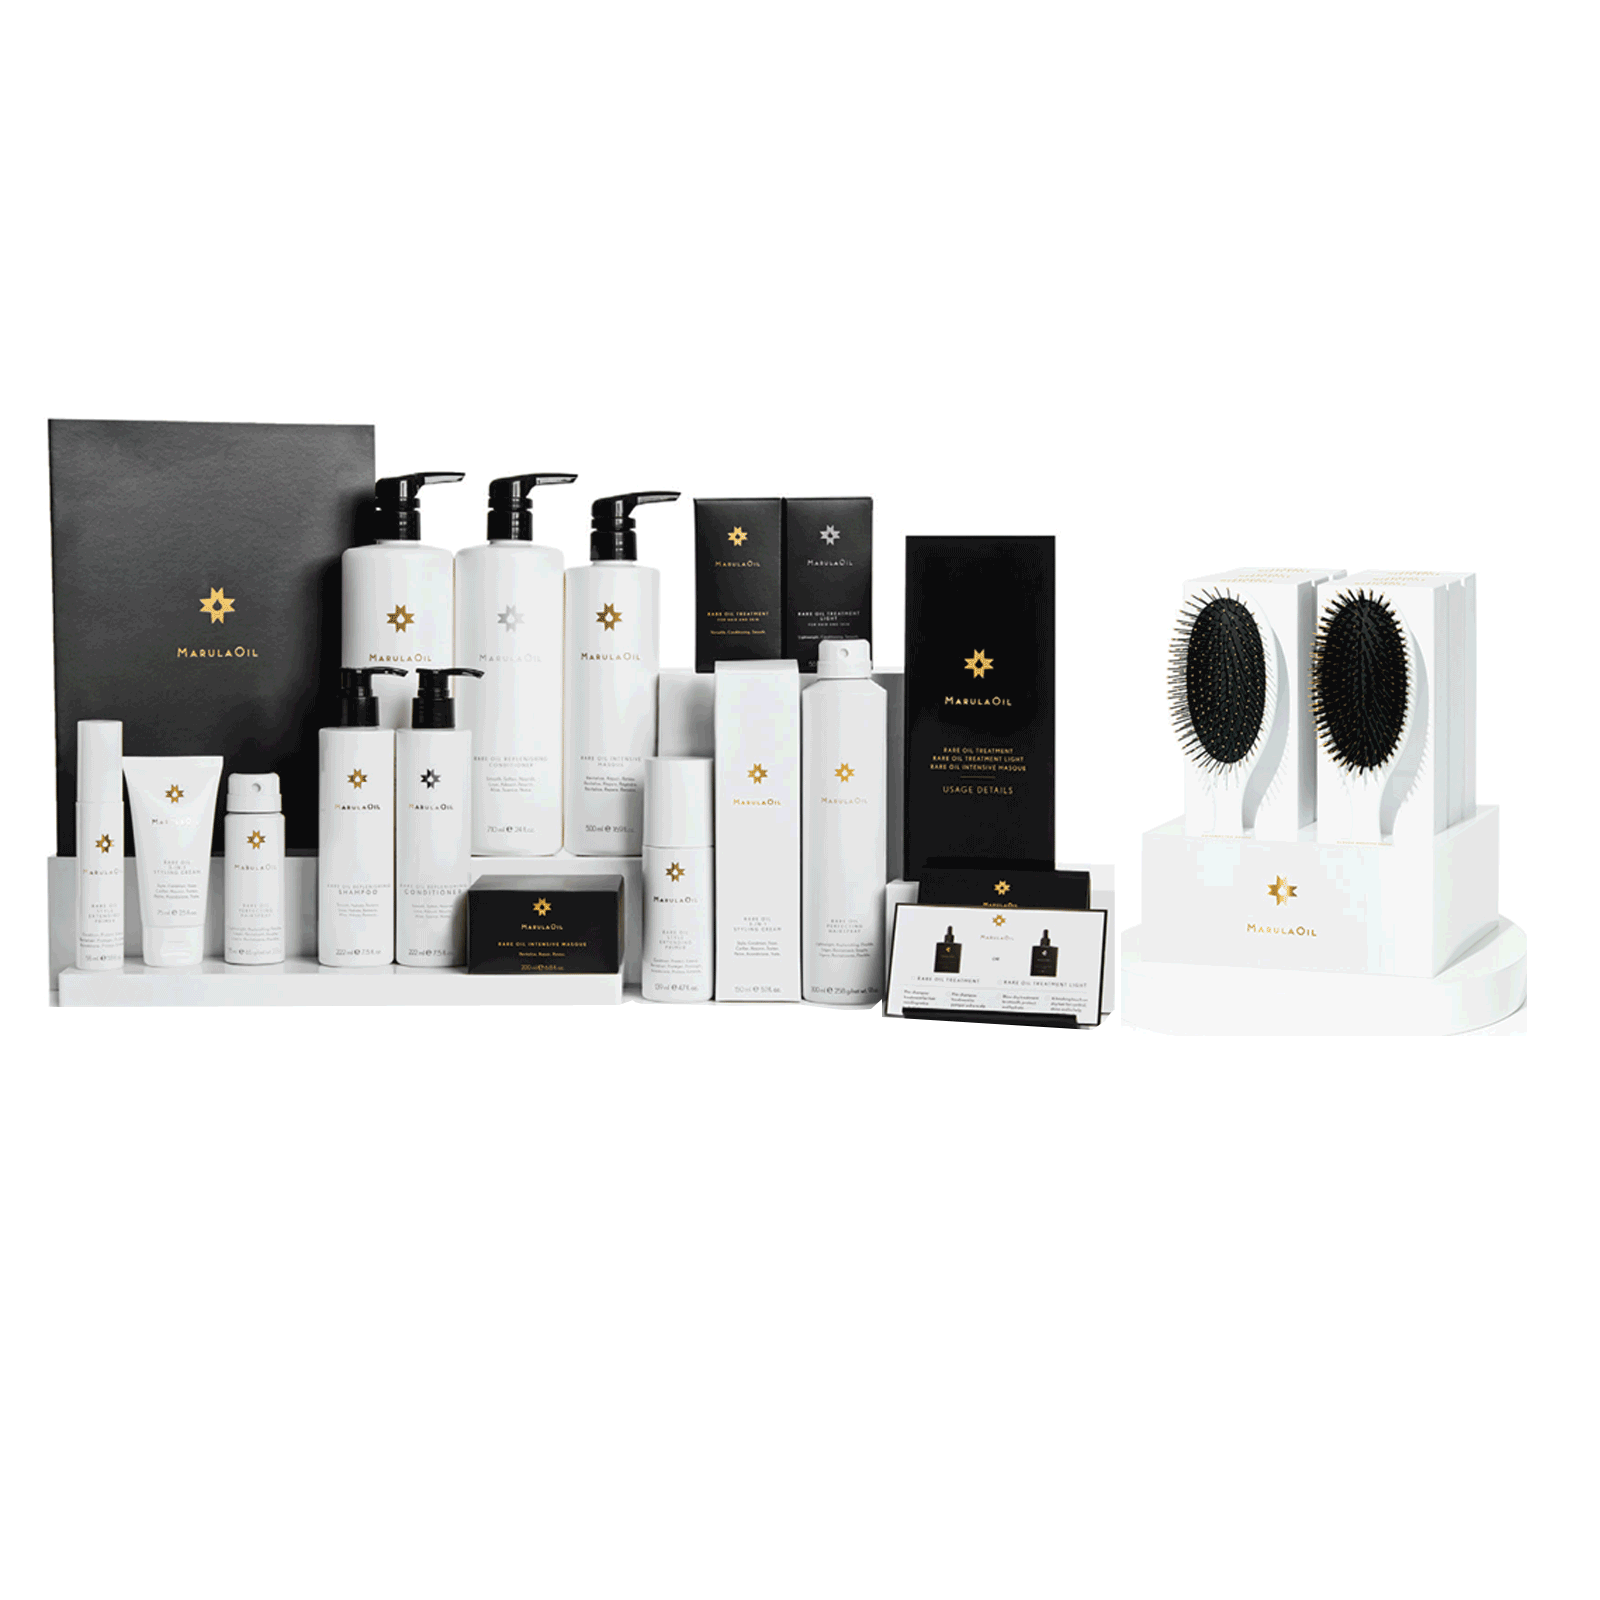 Marulaoil salon intro john paul mitchell systems cosmoprof for Beauty salon introduction